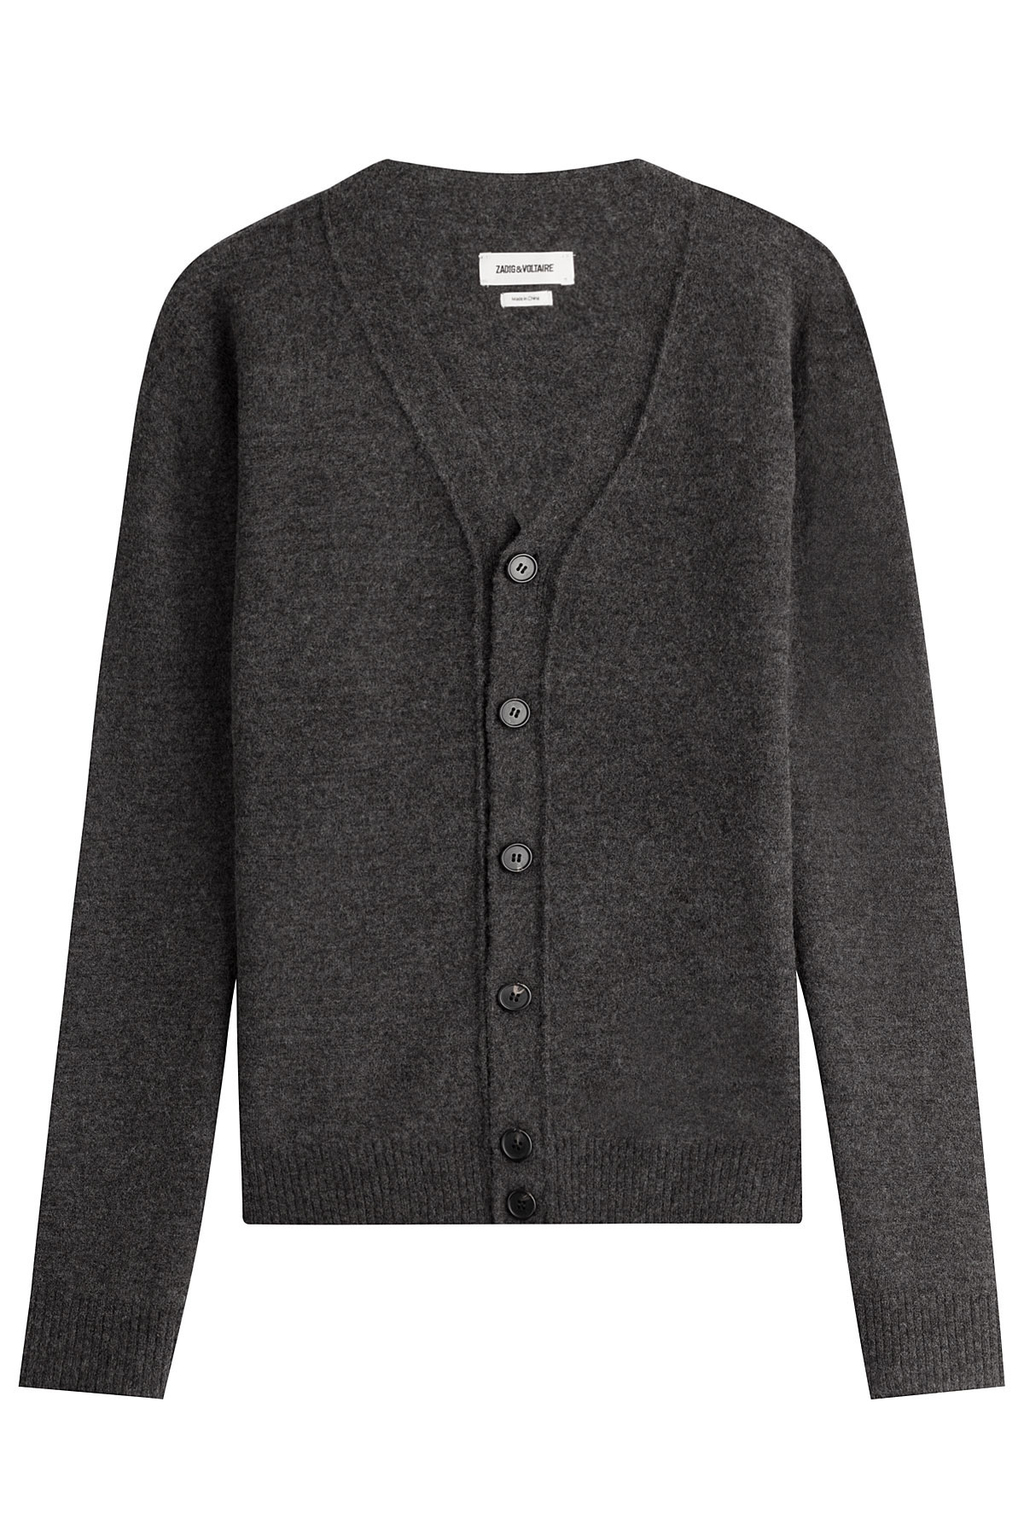 Cardigan With Wool And Yak - neckline: v-neck; pattern: plain; predominant colour: charcoal; occasions: casual; length: standard; style: standard; fibres: wool - 100%; fit: standard fit; sleeve length: long sleeve; sleeve style: standard; texture group: knits/crochet; pattern type: knitted - fine stitch; wardrobe: basic; season: a/w 2016